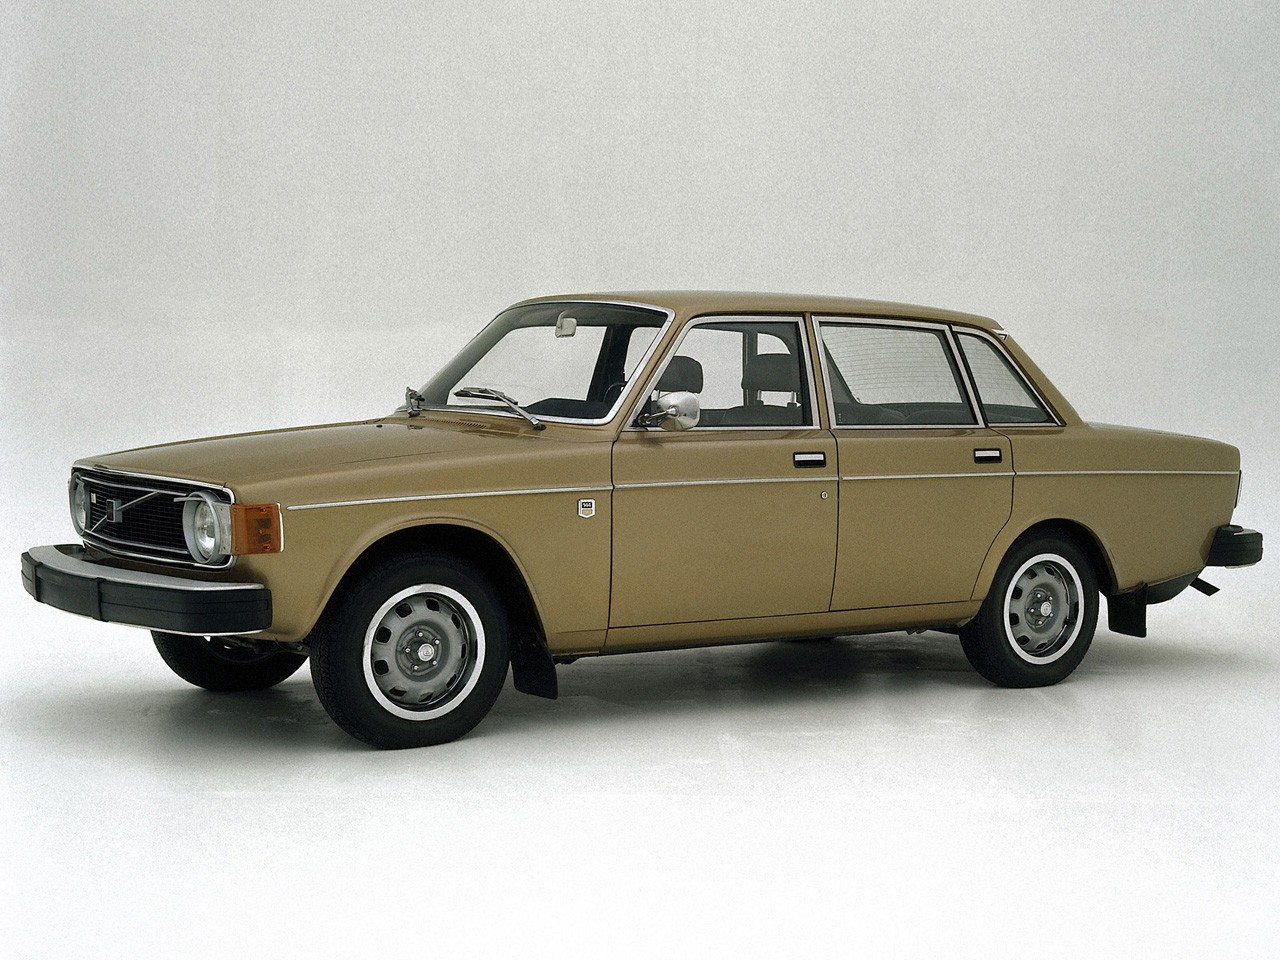 VOLVO 144 specs & photos - 1967, 1968, 1969, 1970, 1971, 1972, 1973, 1974 - autoevolution